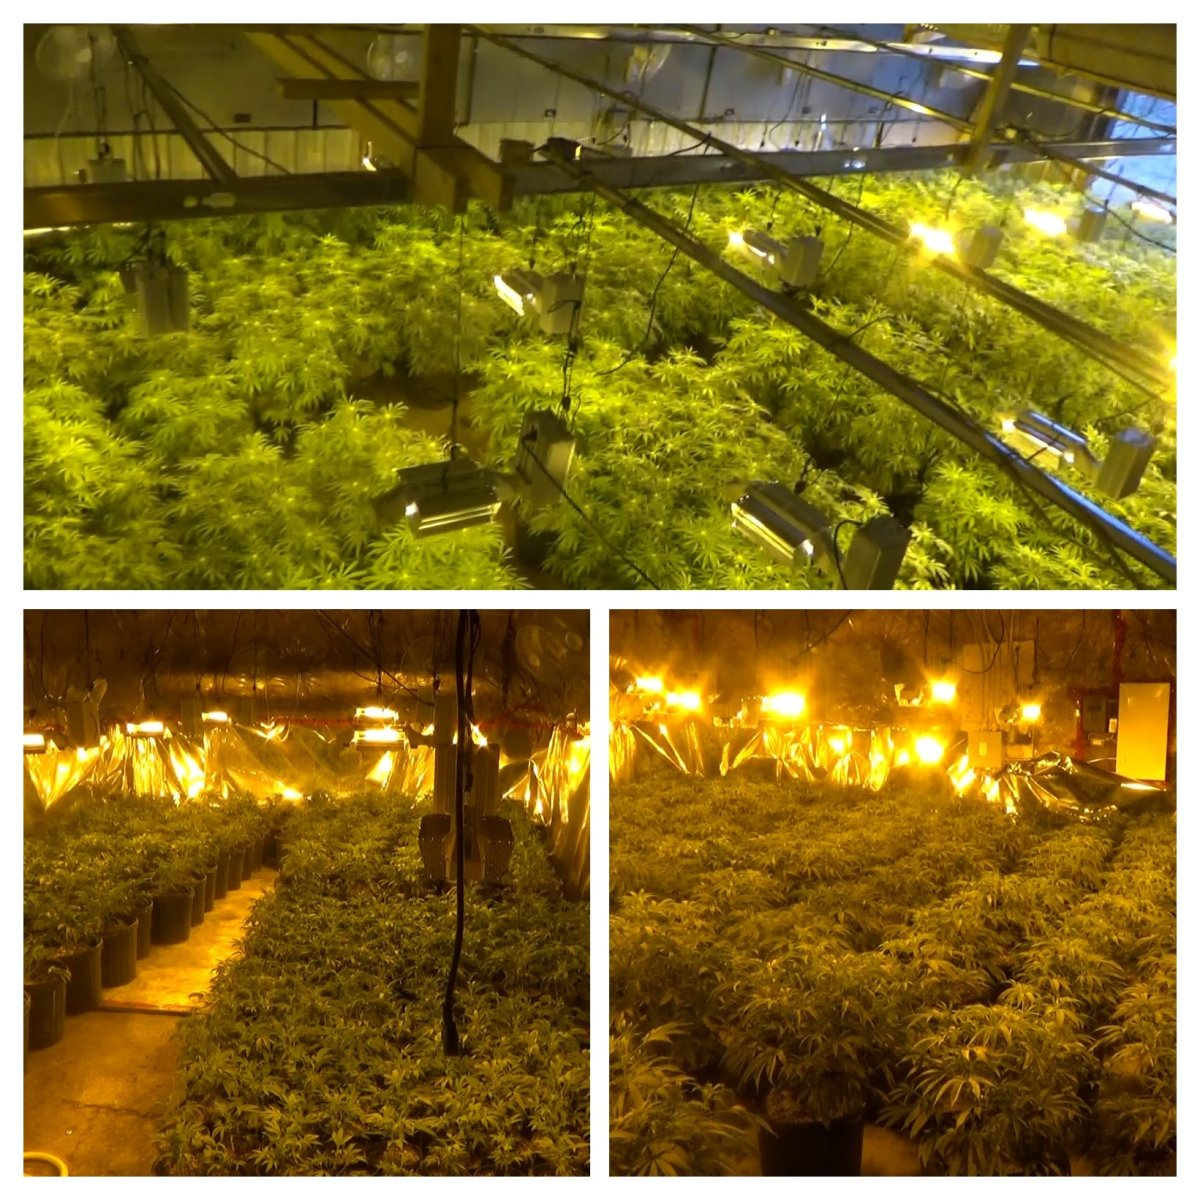 Quinte West OPP seized and charged two Markham residents who were found with over 70 pounds of dried cannabis and 1,100 plants on Harrington Road in Quinte West.